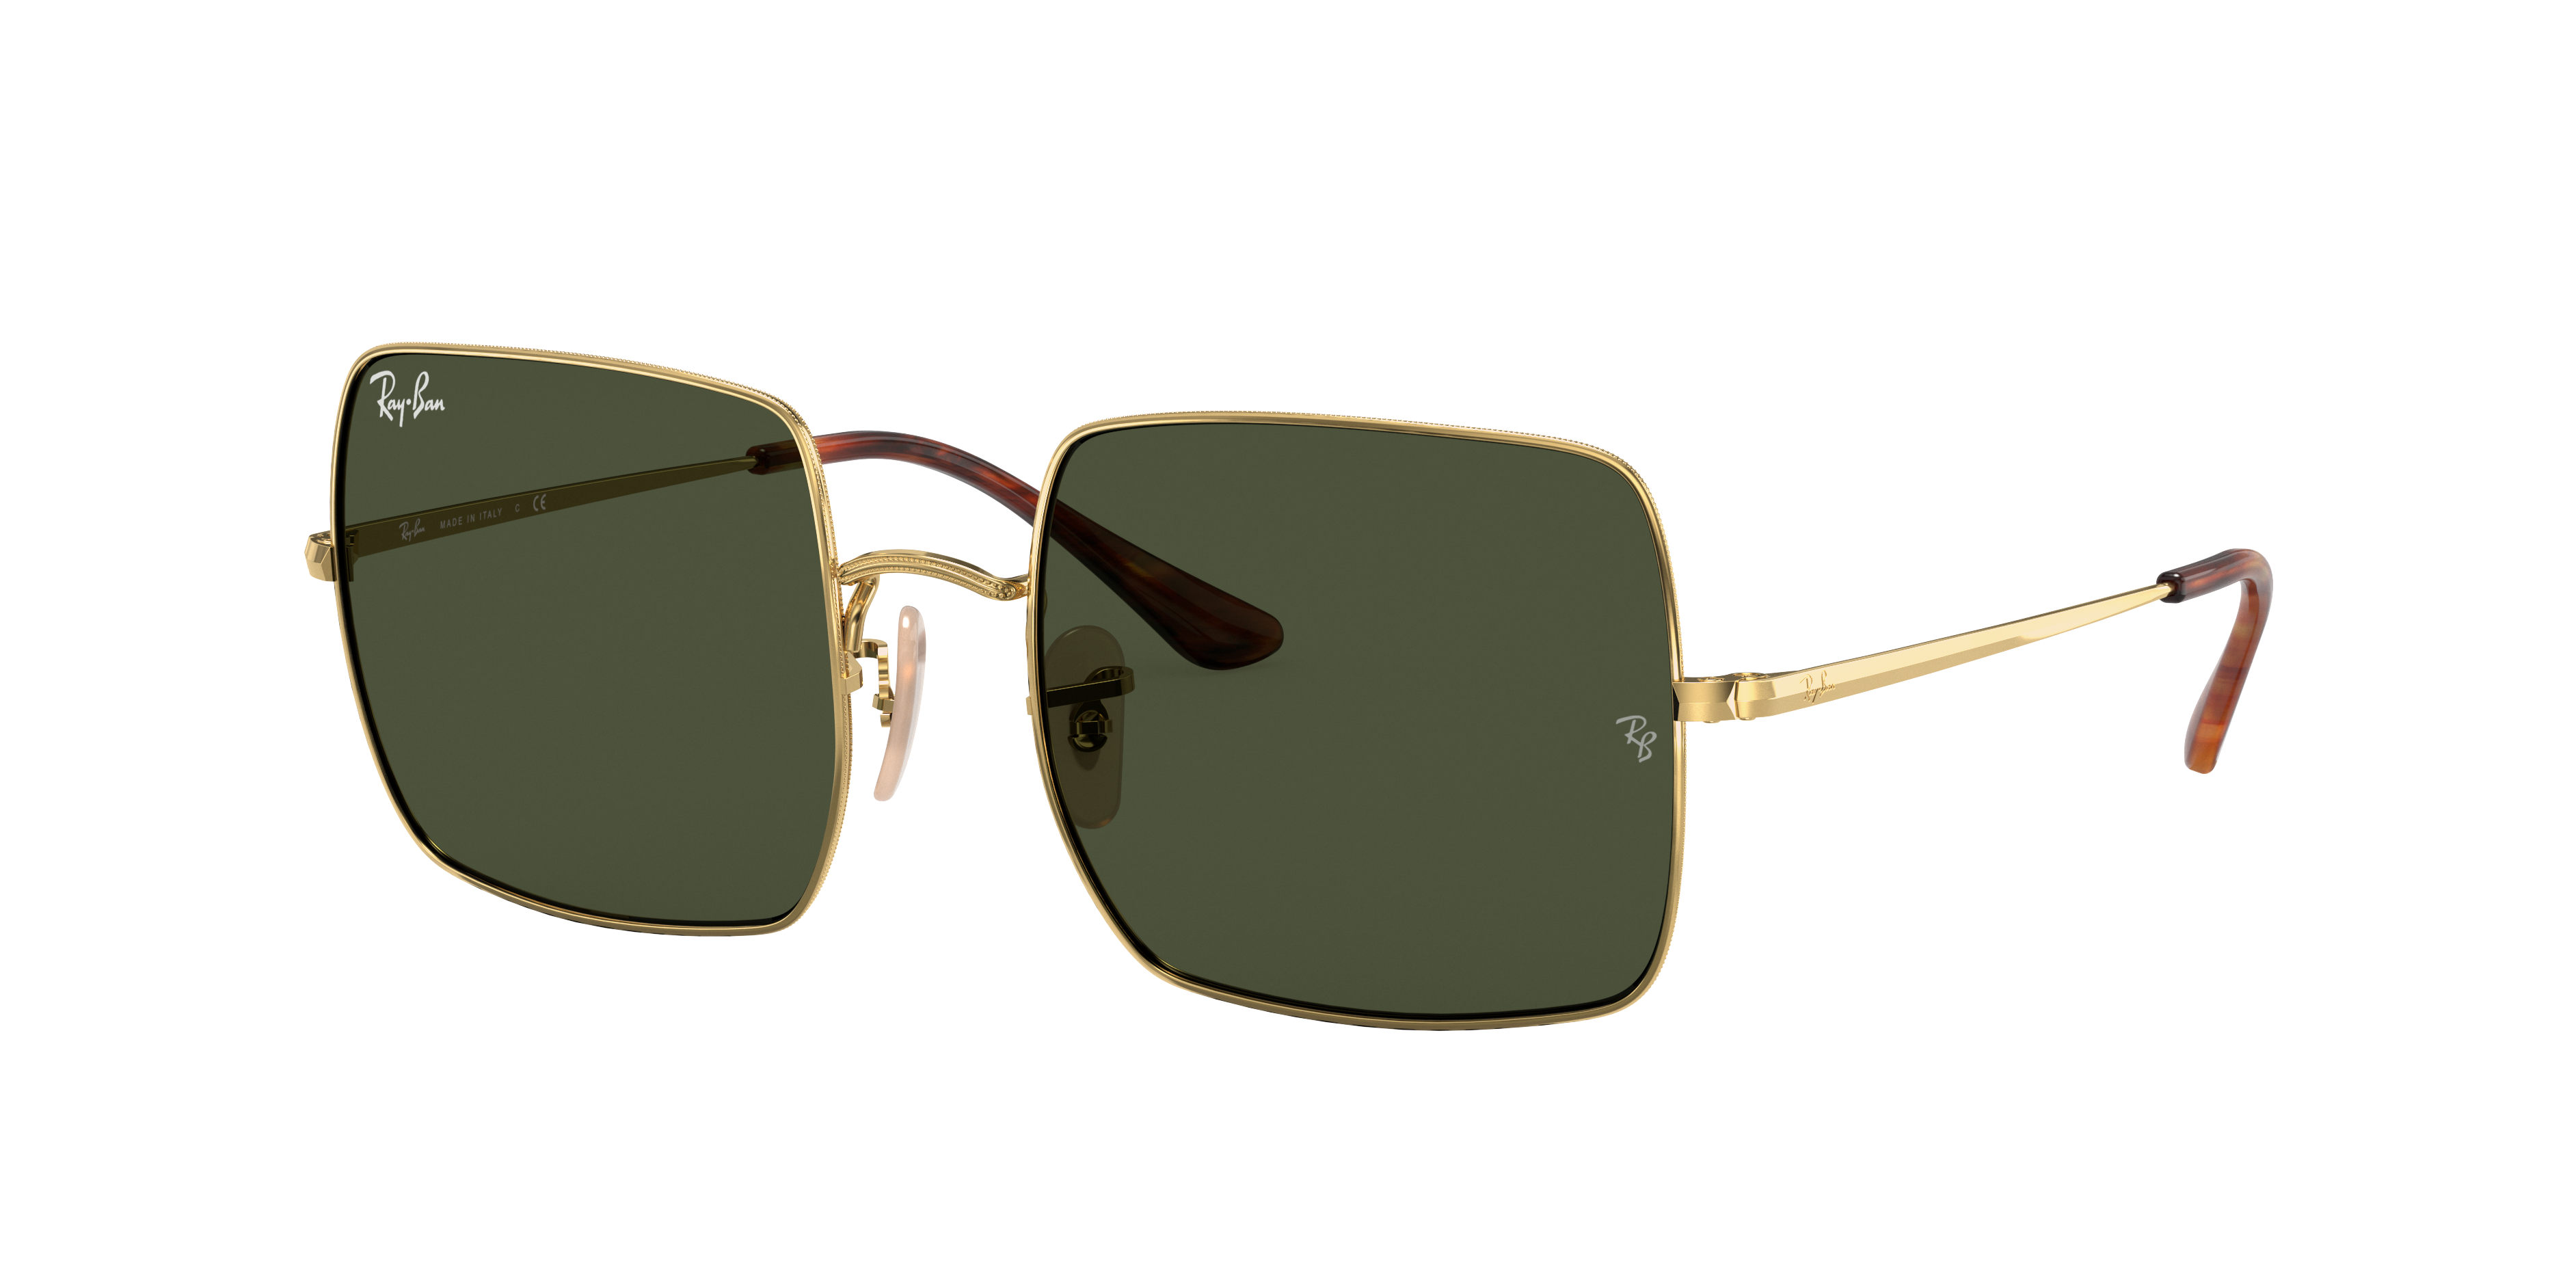 Ray-Ban Square 1971 Classic Gold, Green Lenses - RB1971